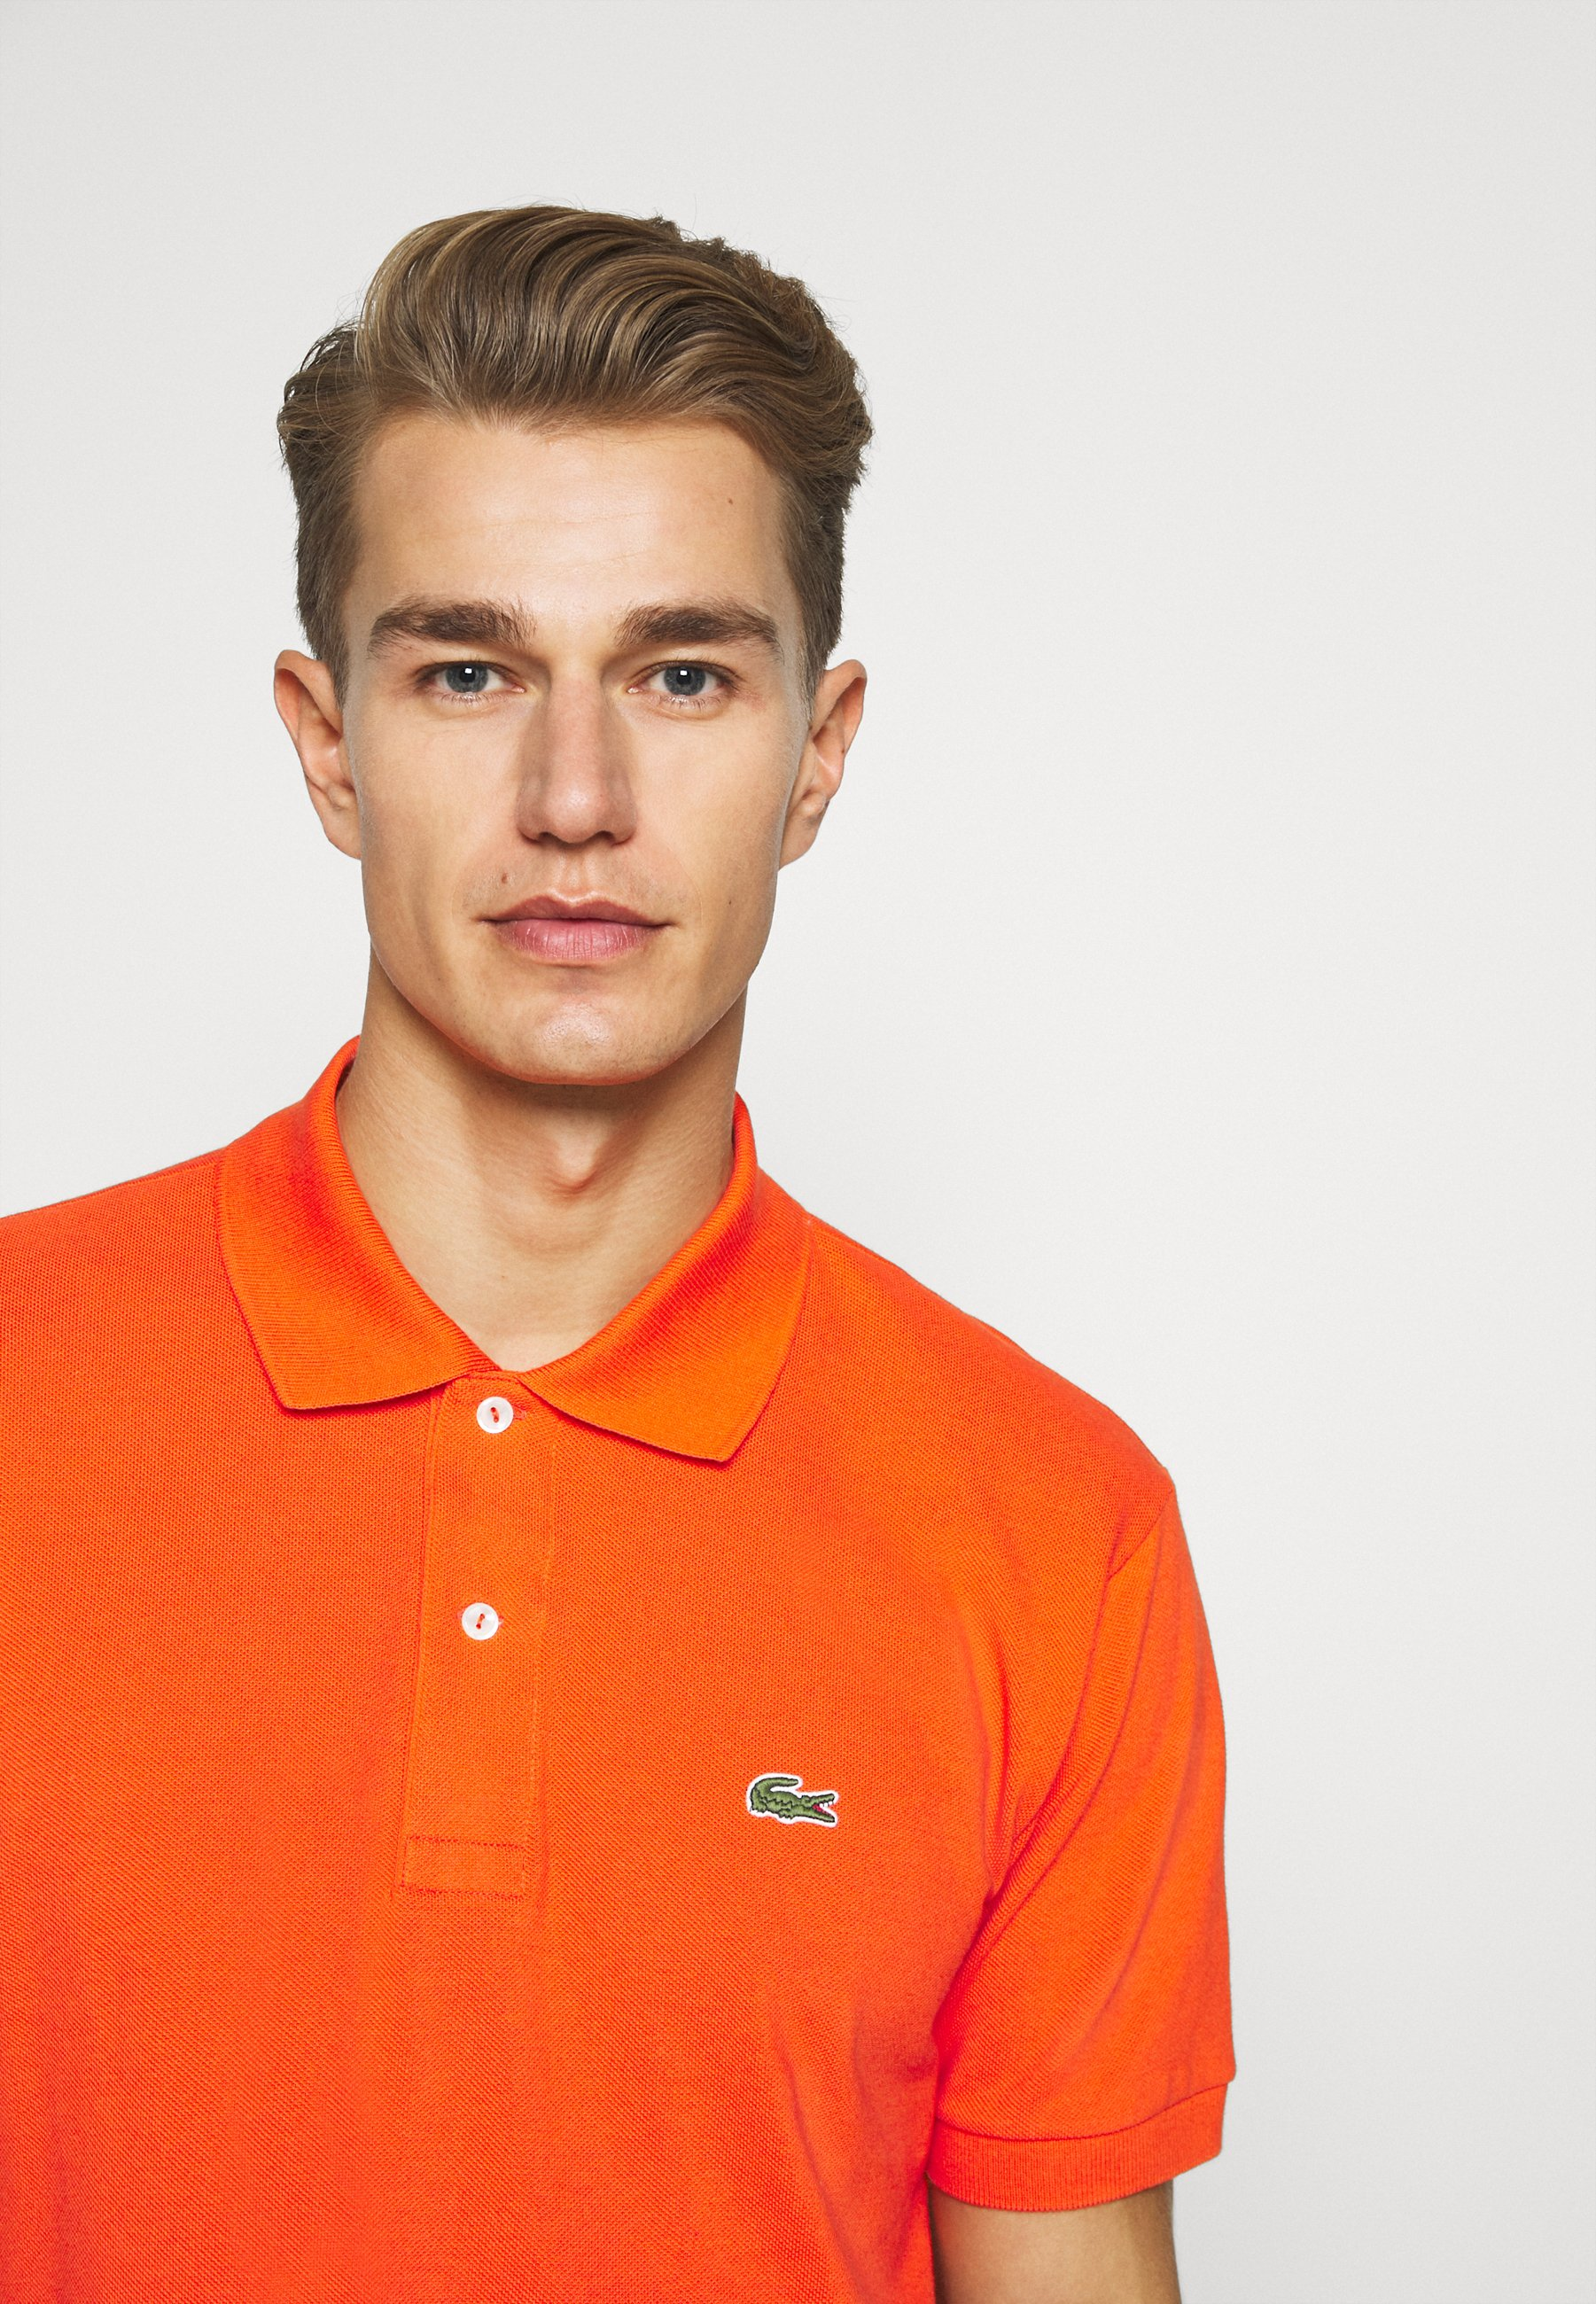 Lacoste Polo shirt - red yzK60